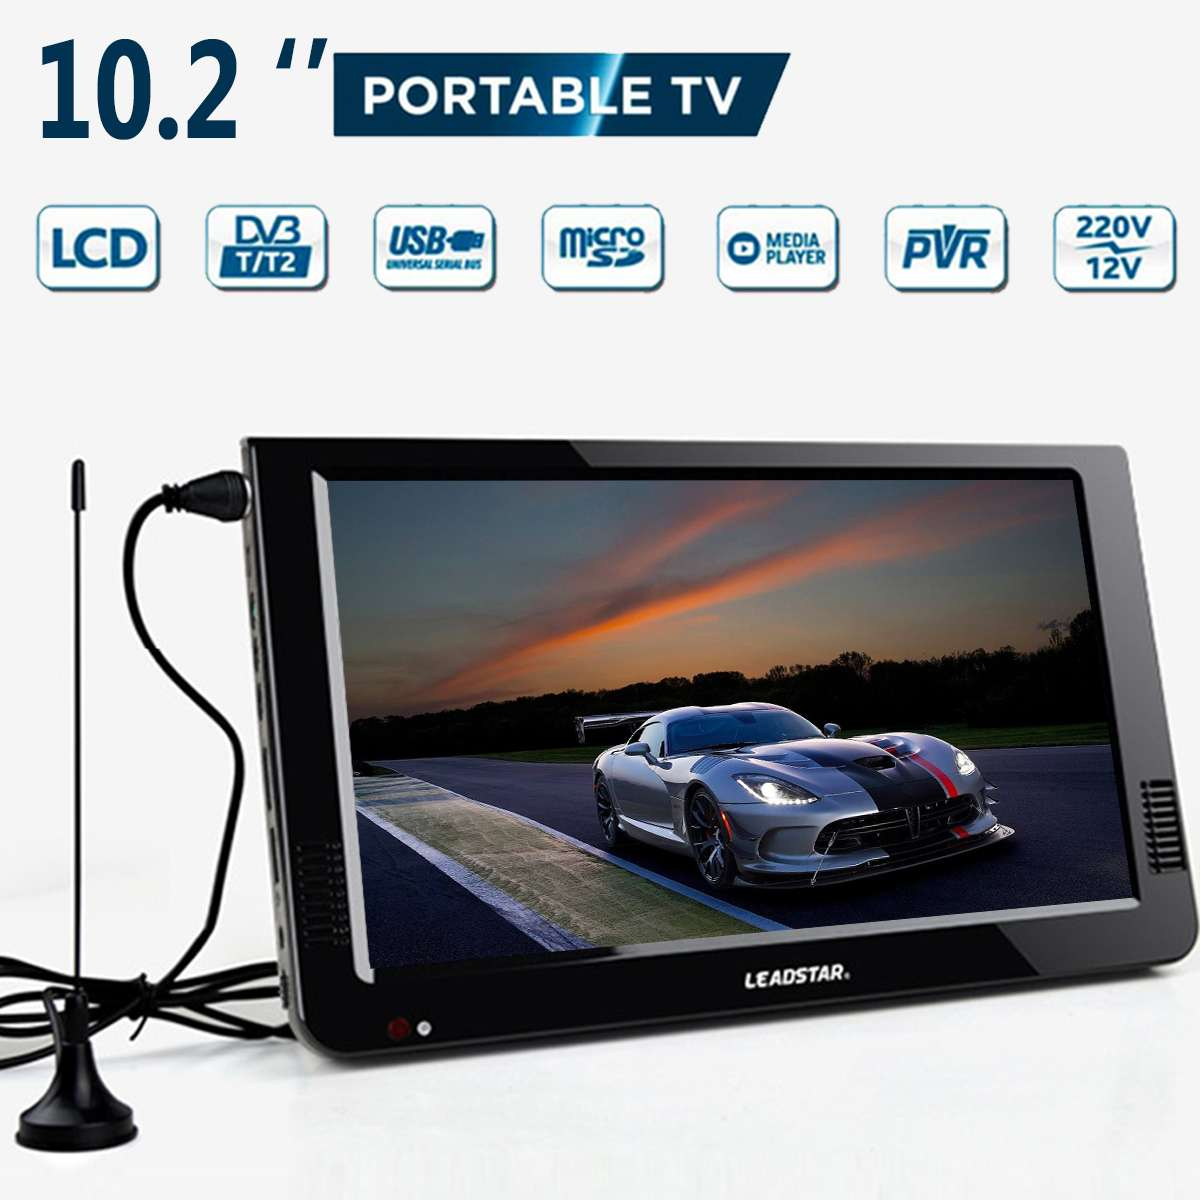 Portable Car Television Outdoor Car 16:9 Digital Analog Television DVB-T / DVB-T2 TFT 10.2'' LED-LCD HD TV Support TF Card Audio image